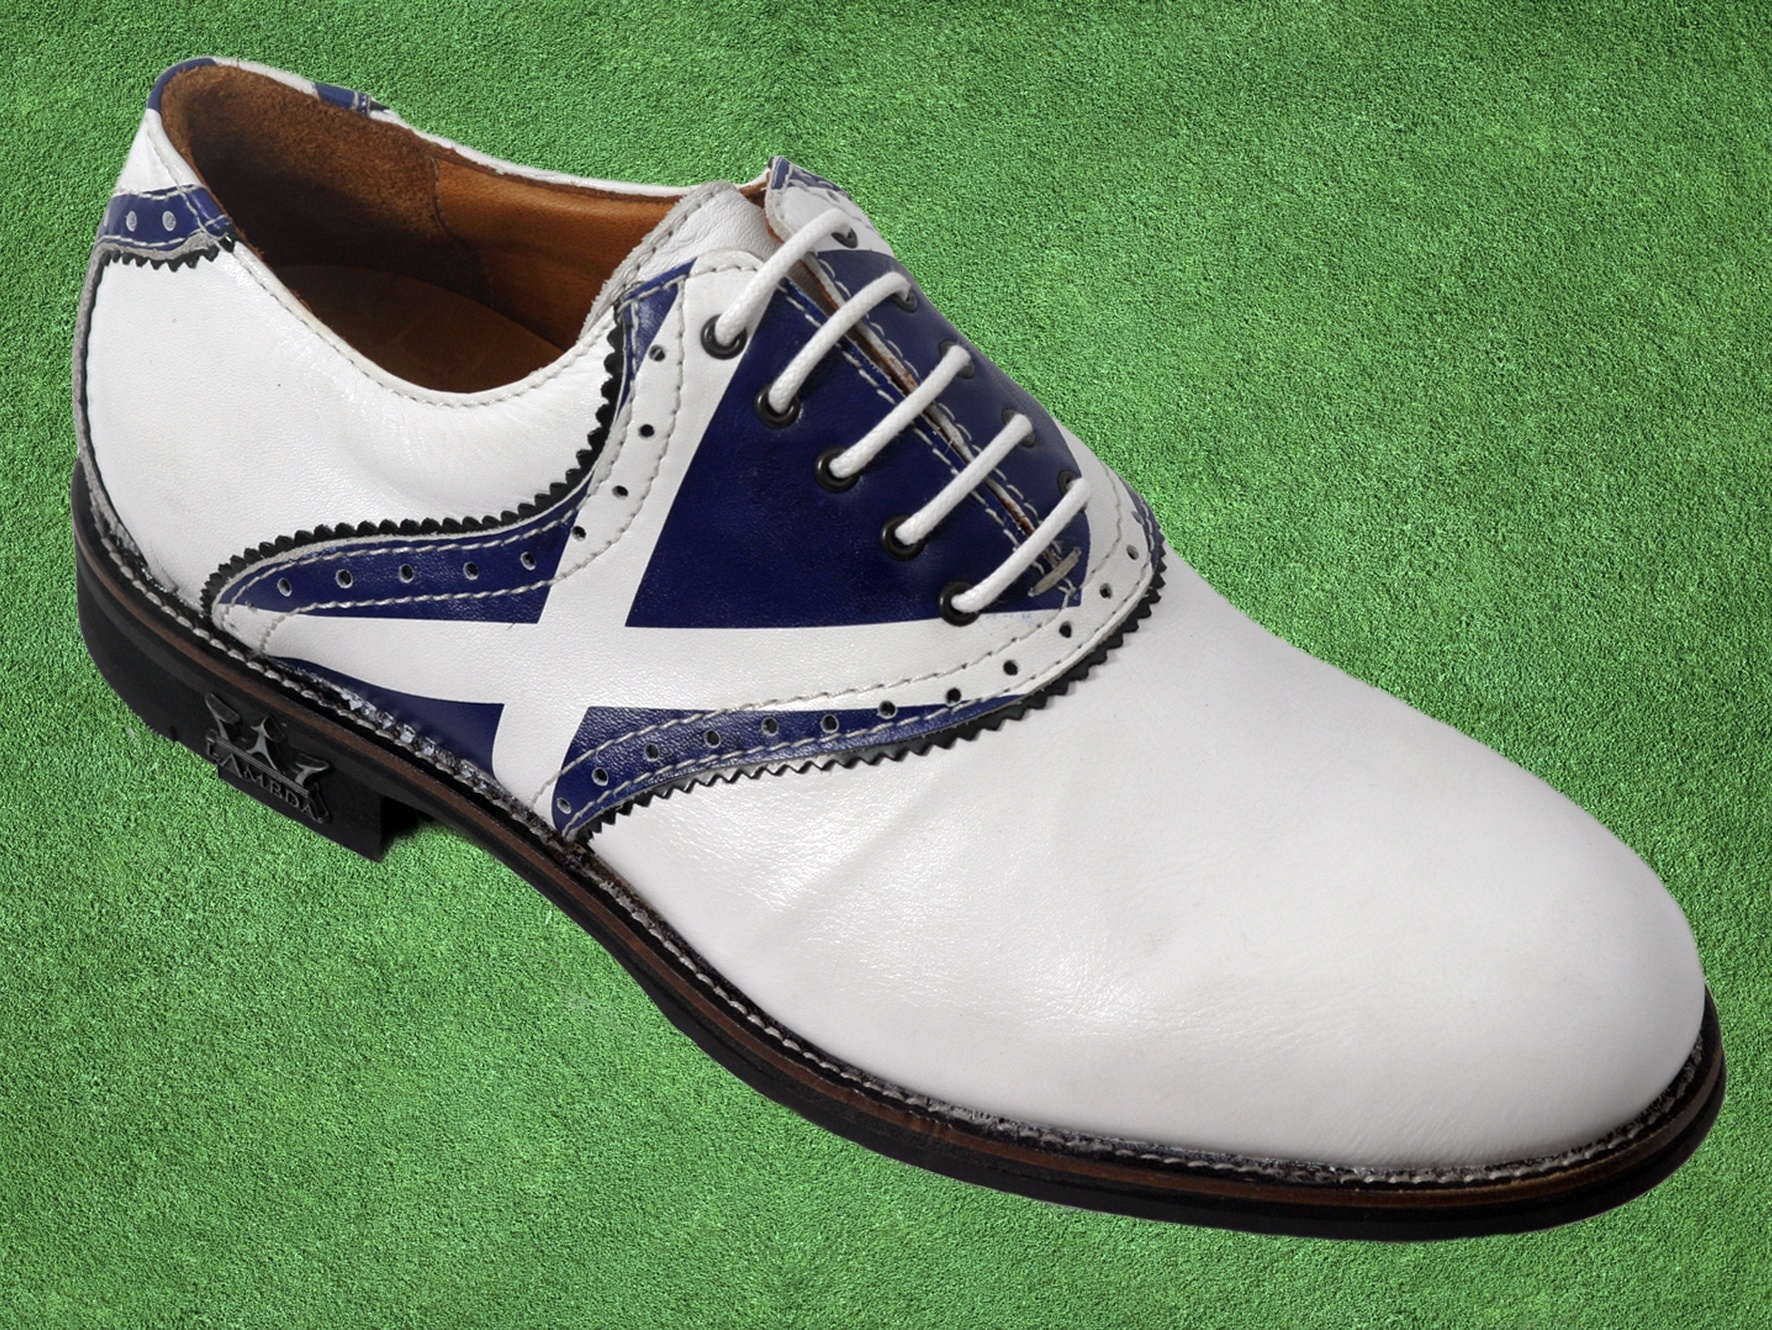 Lambda Golf Imperia Scotland Golf Shoe